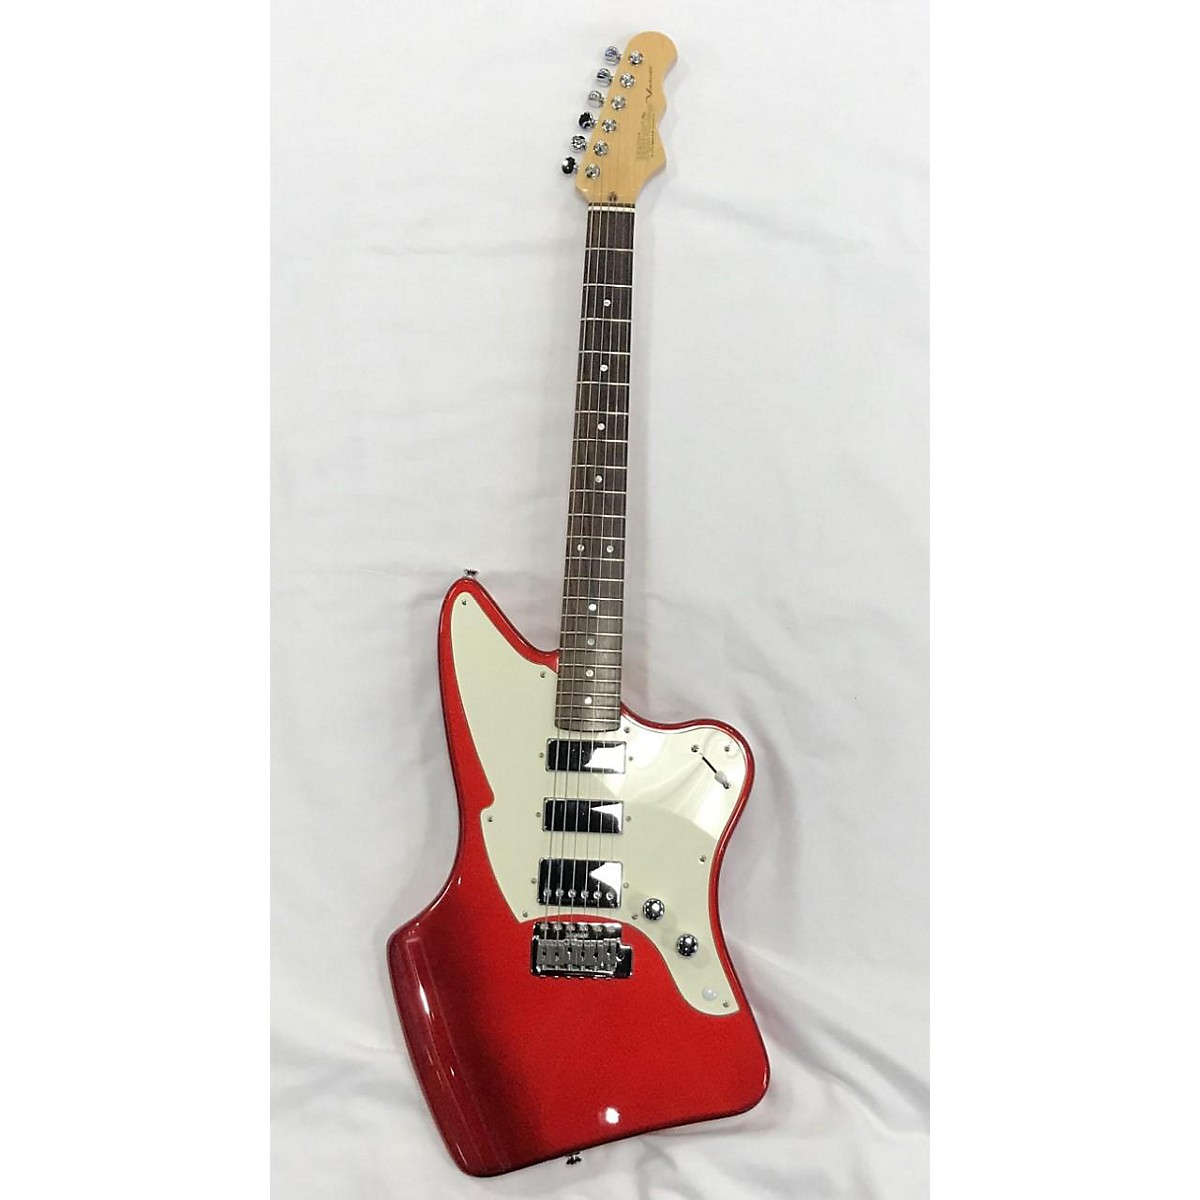 In Store Used Used 2016 Fret King Ventura Candy Apple Red Metallic Solid Body Electric Guitar